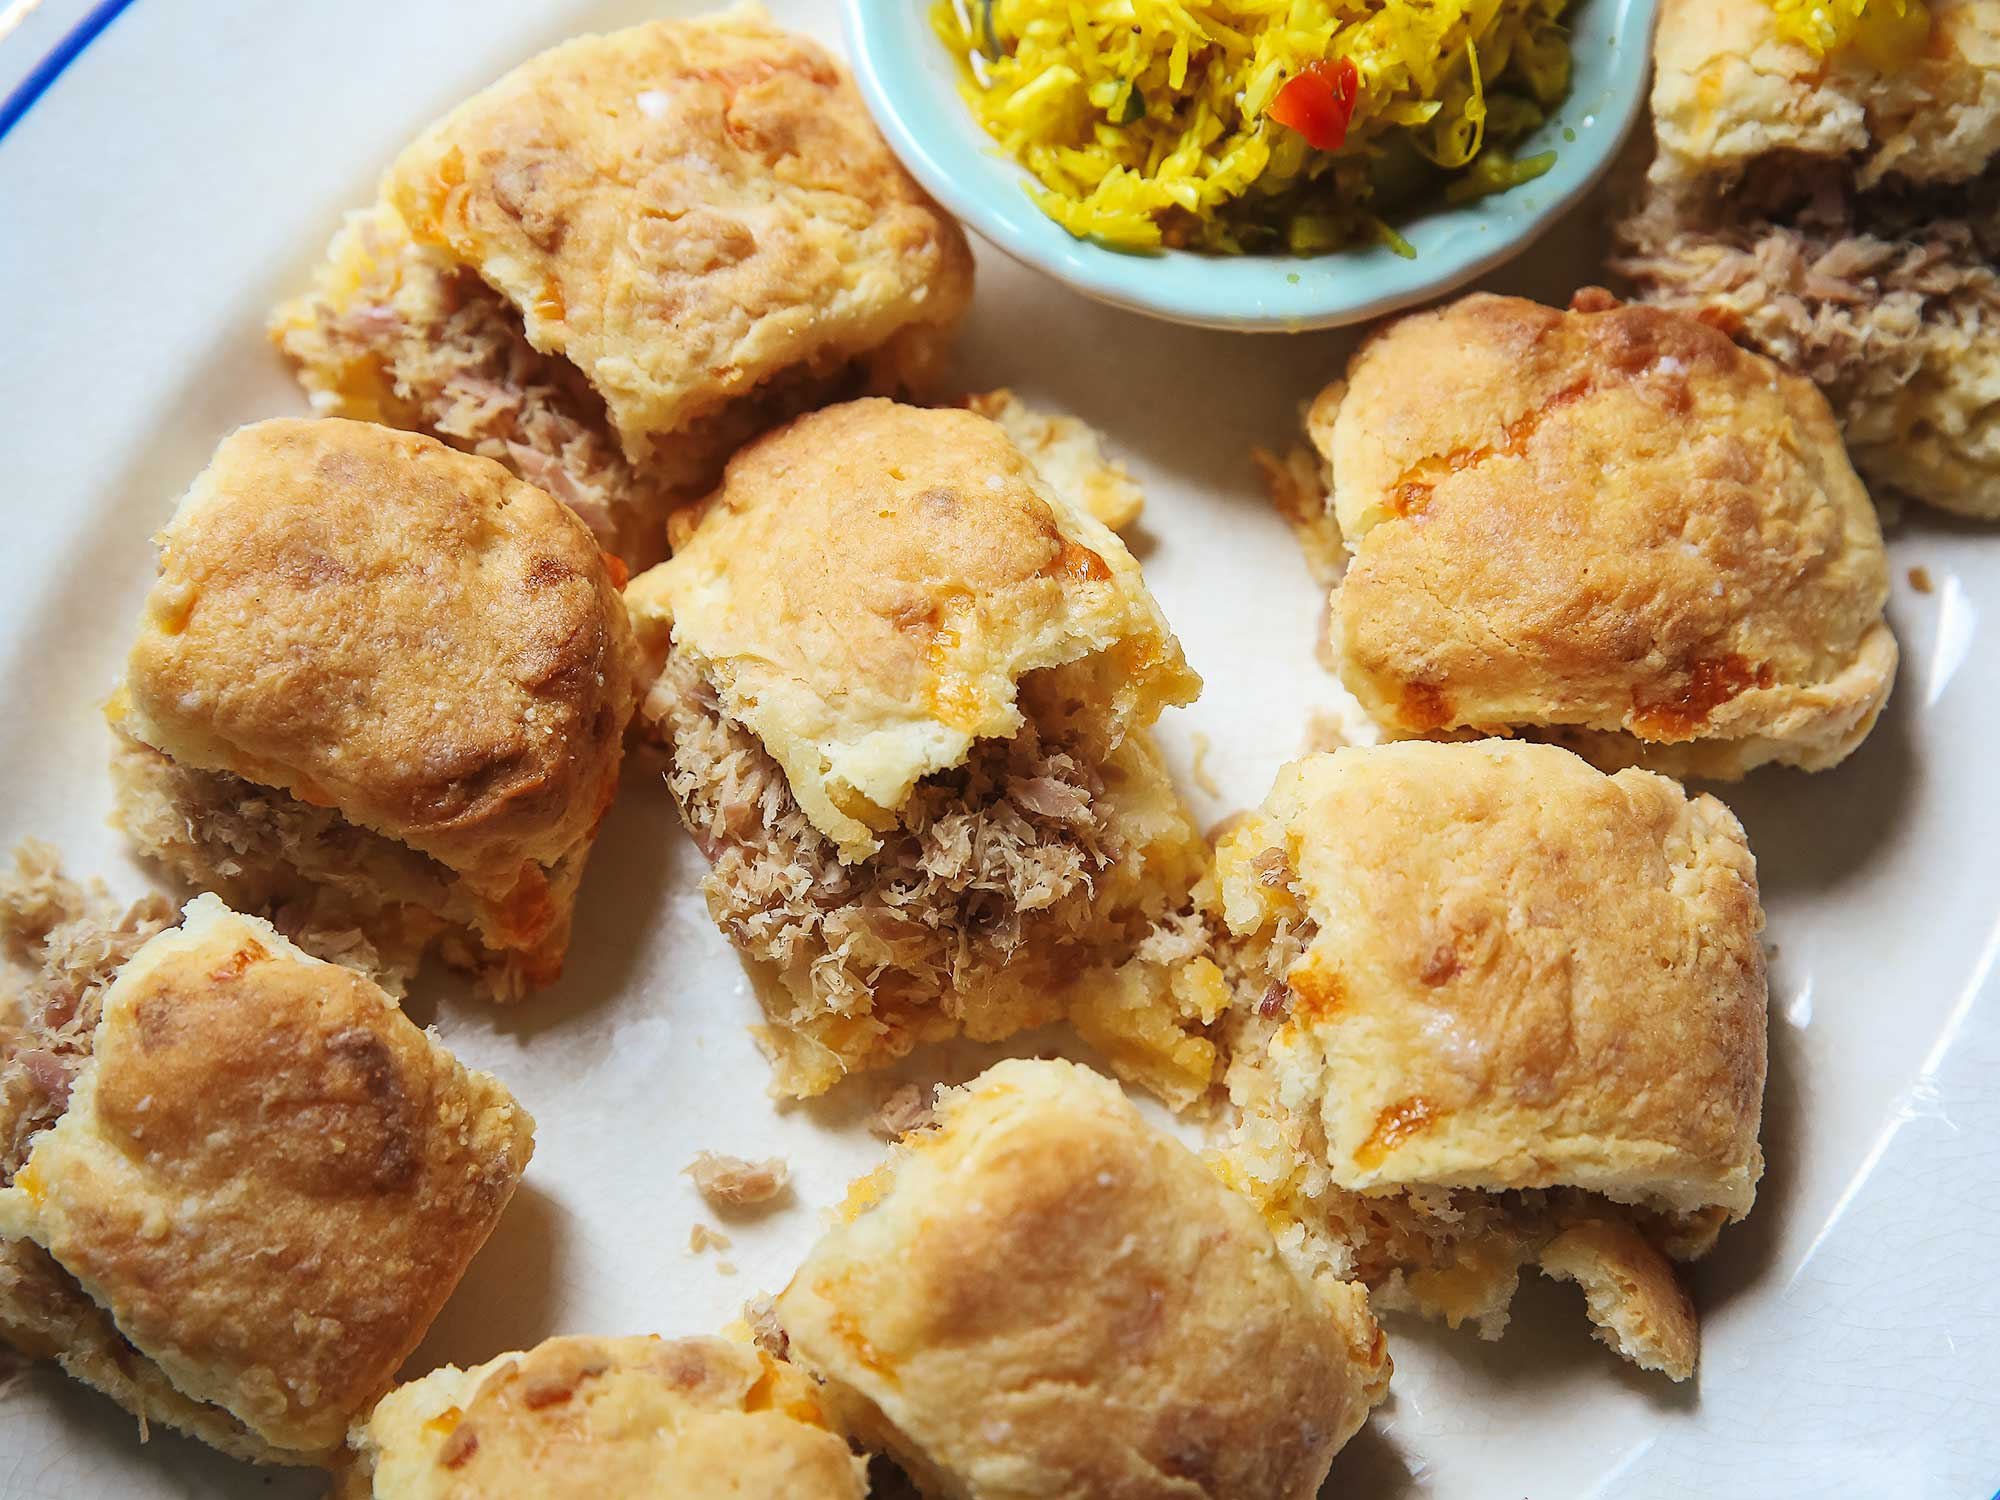 You Should Serve These Biscuits at Your Next Cocktail Party